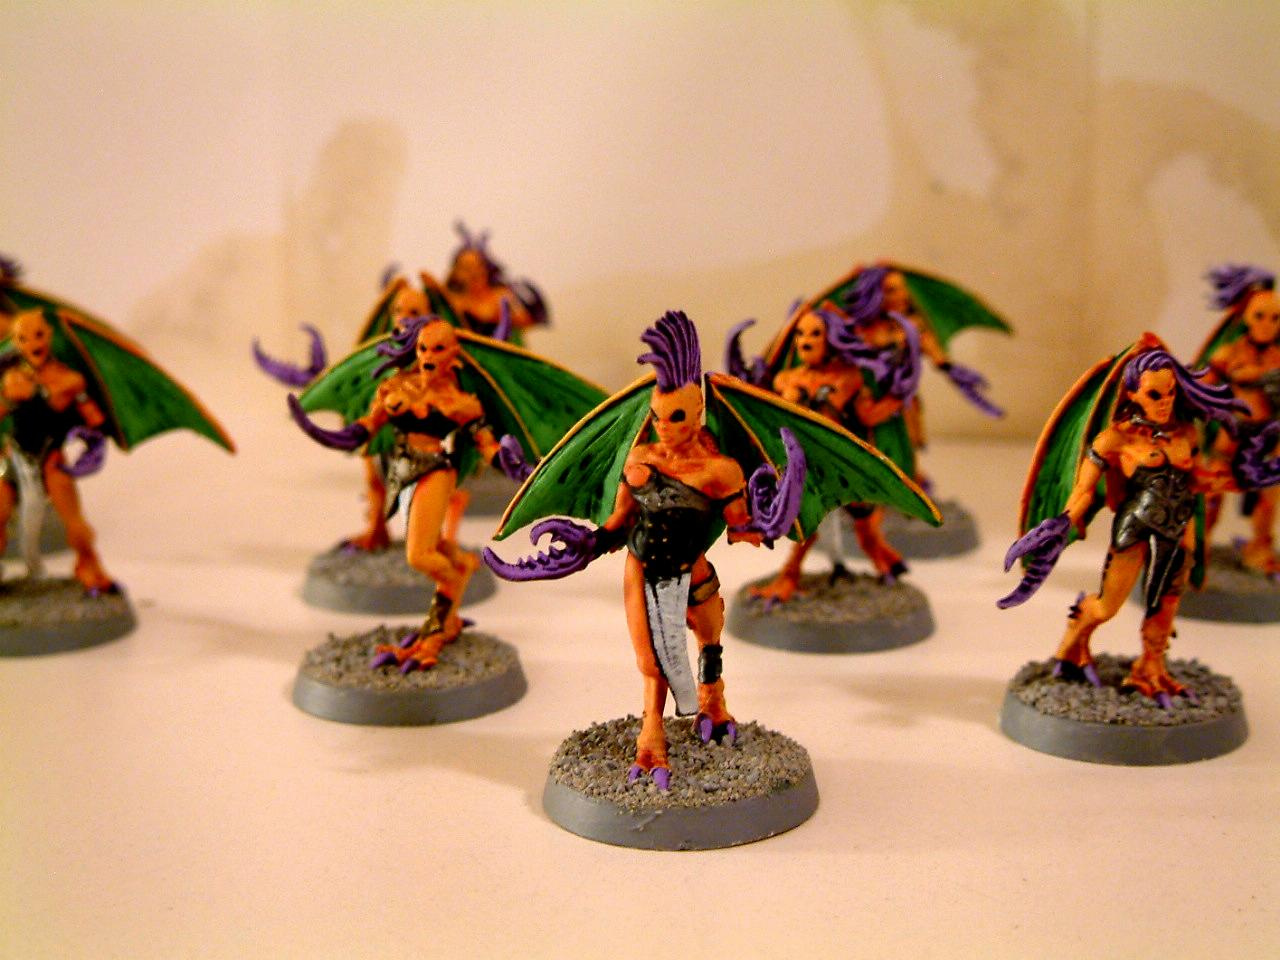 Chaos, Classic, Daemonettes, Daemons, Fiends, Green, Old, Orange, Out Of Production, Purple, Slaanesh, Warhammer 40,000